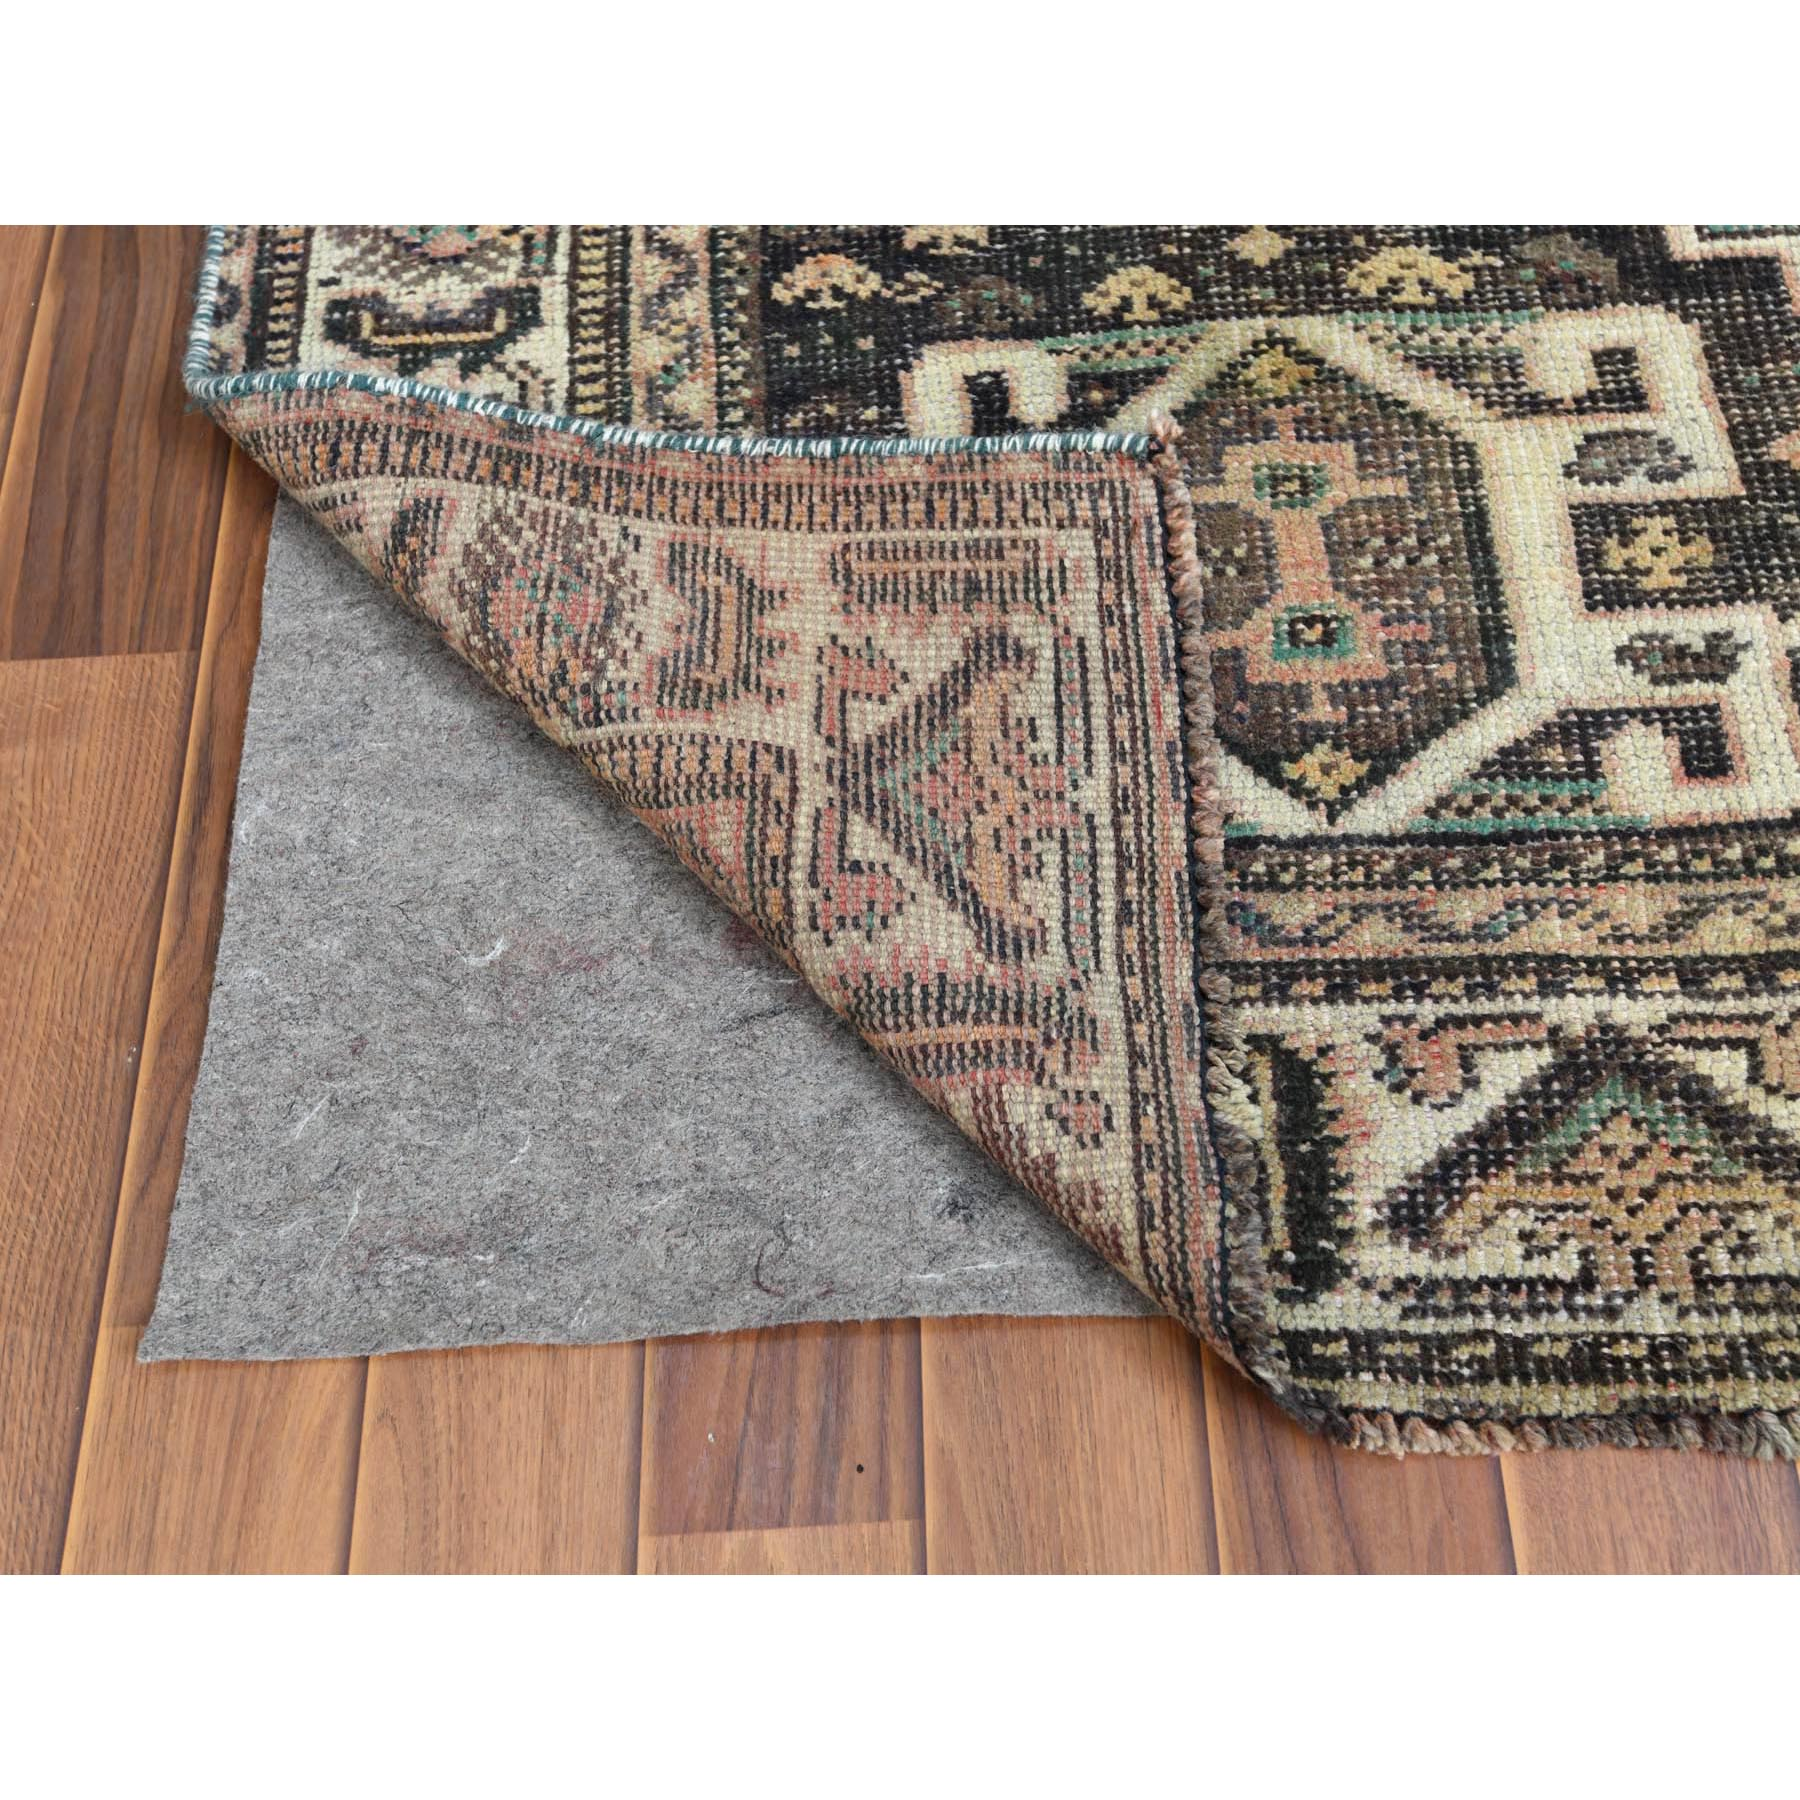 """5'4""""x8'3"""" Semi Antique Tan Color Persian Shiraz Hand Knotted Bohemian Clean Natural Wool Cropped Thin Oriental Rug"""